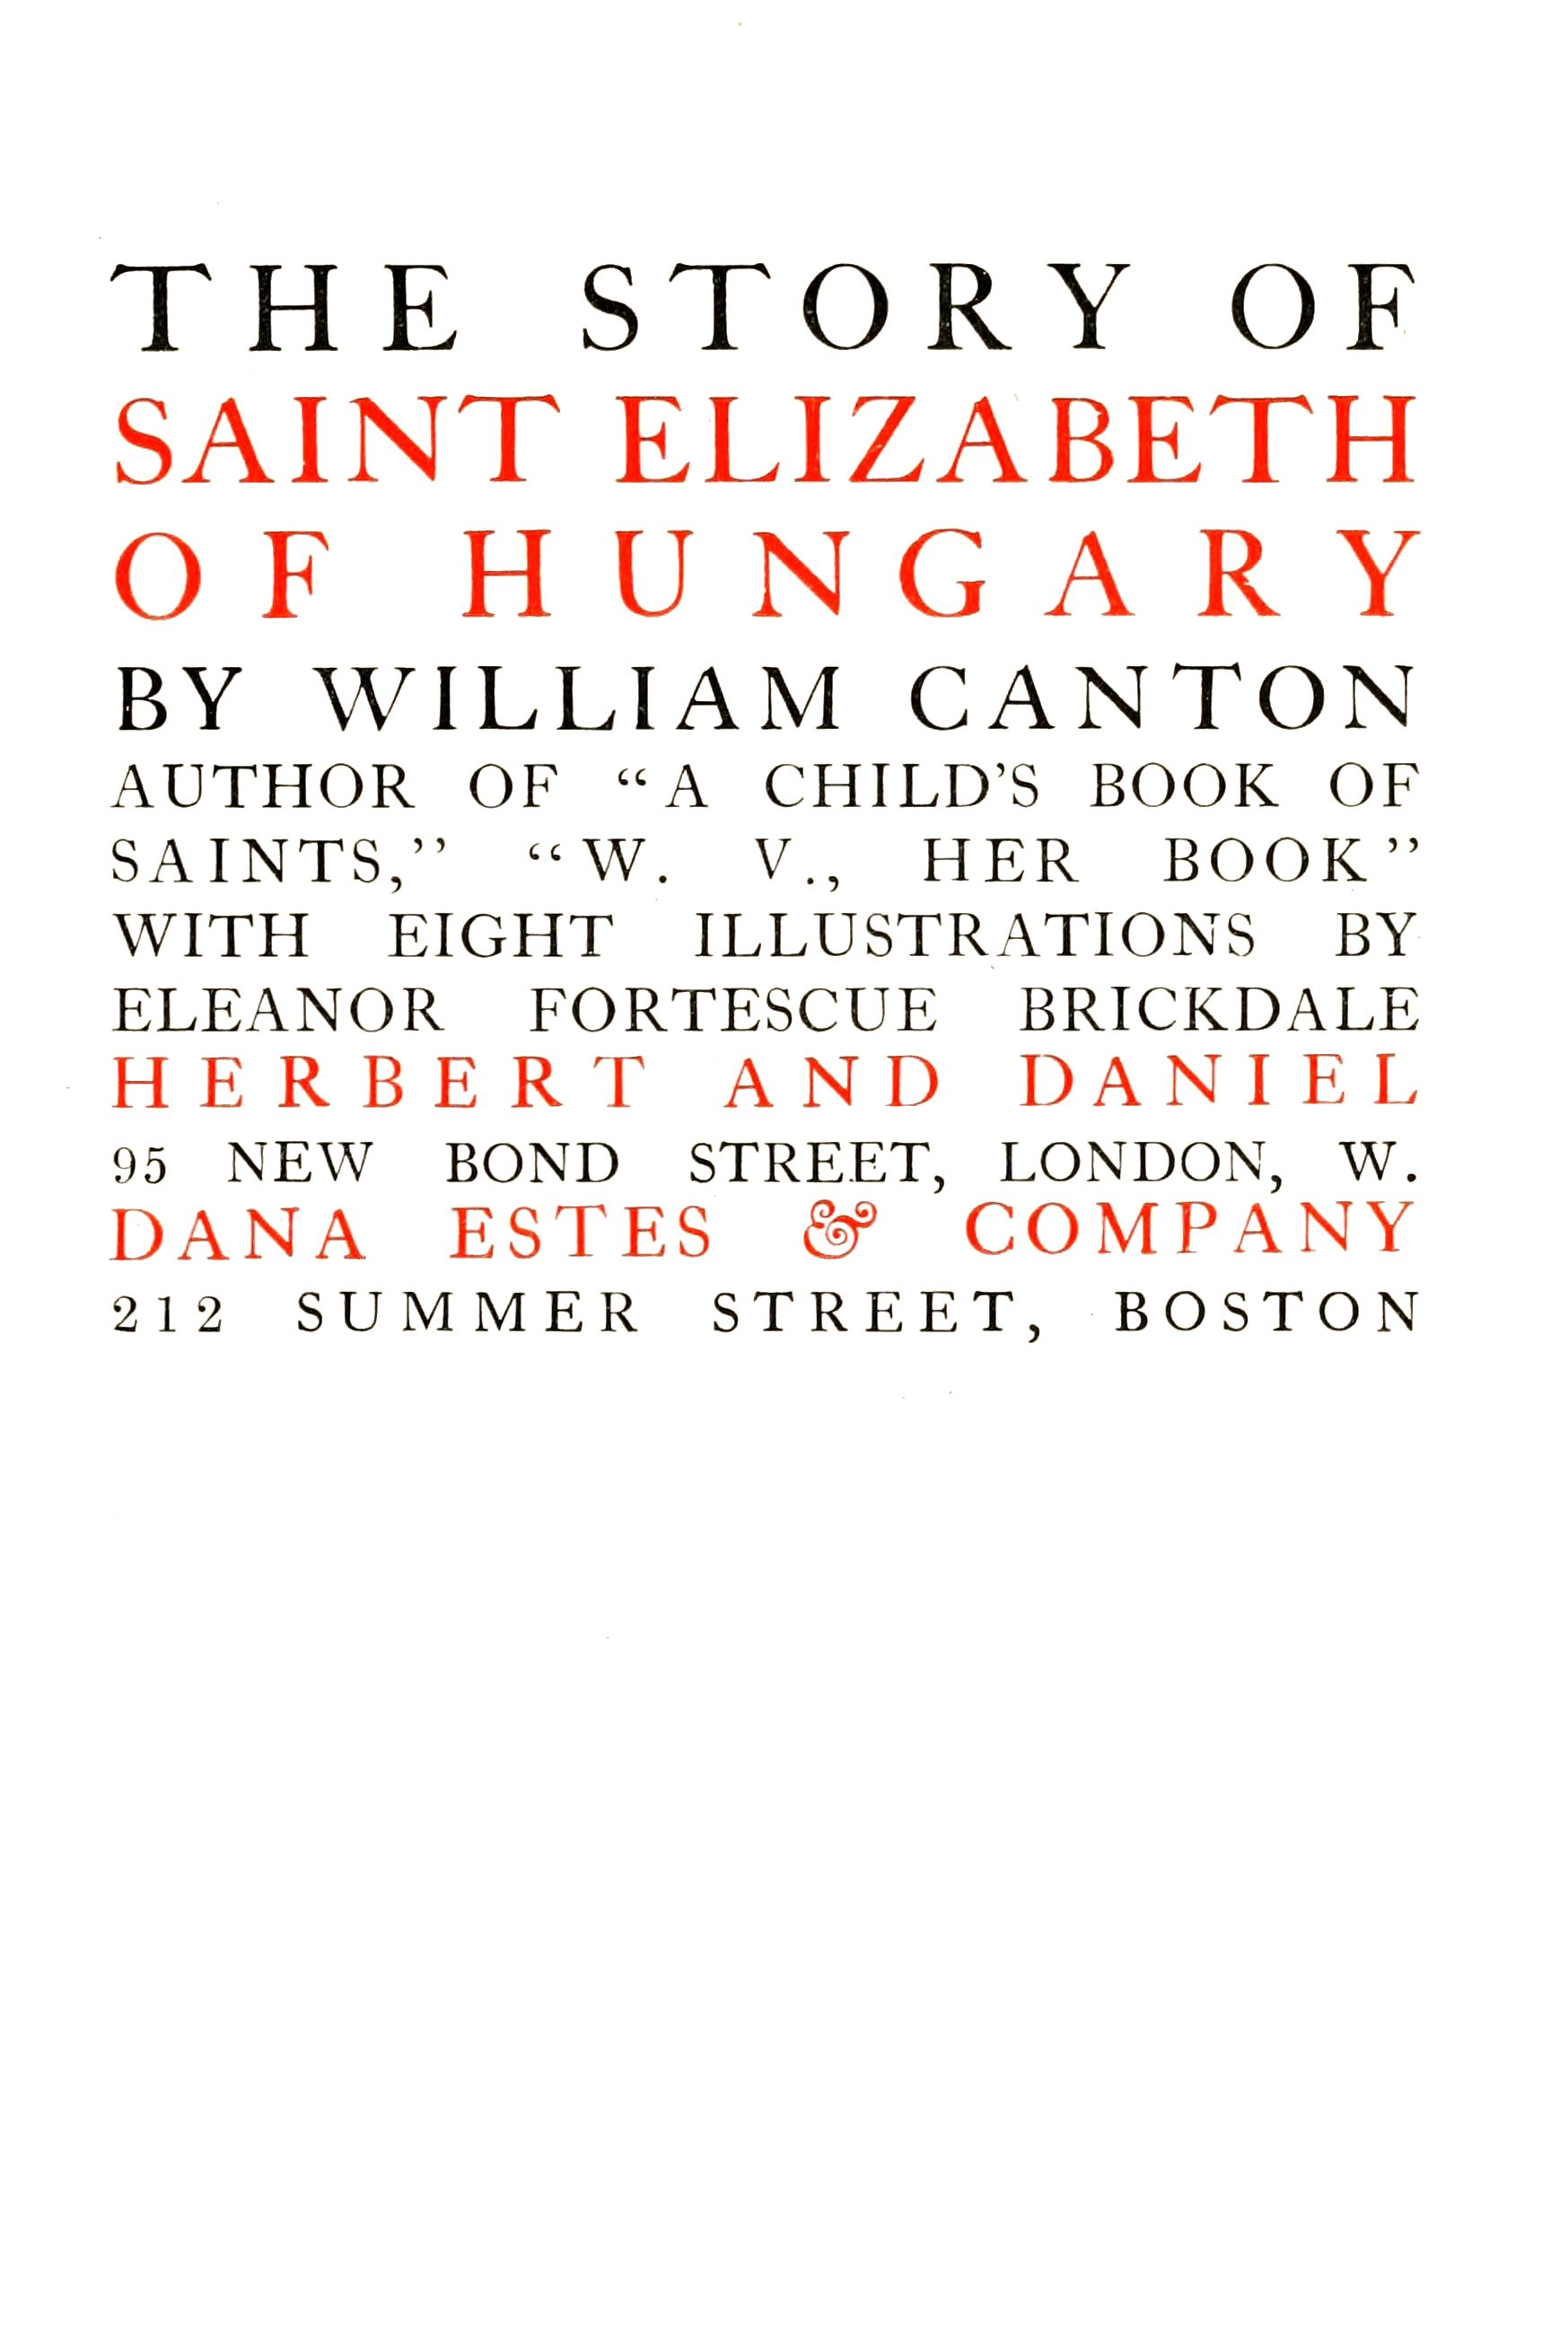 """Title page of """"The story of Saint Elizabeth of Hungary"""" by William Canton; with illustrations by Eleanor Fortescue-Brickdale. Herbert & Daniel, London; Dana Estes & Co., Boston, 1910"""